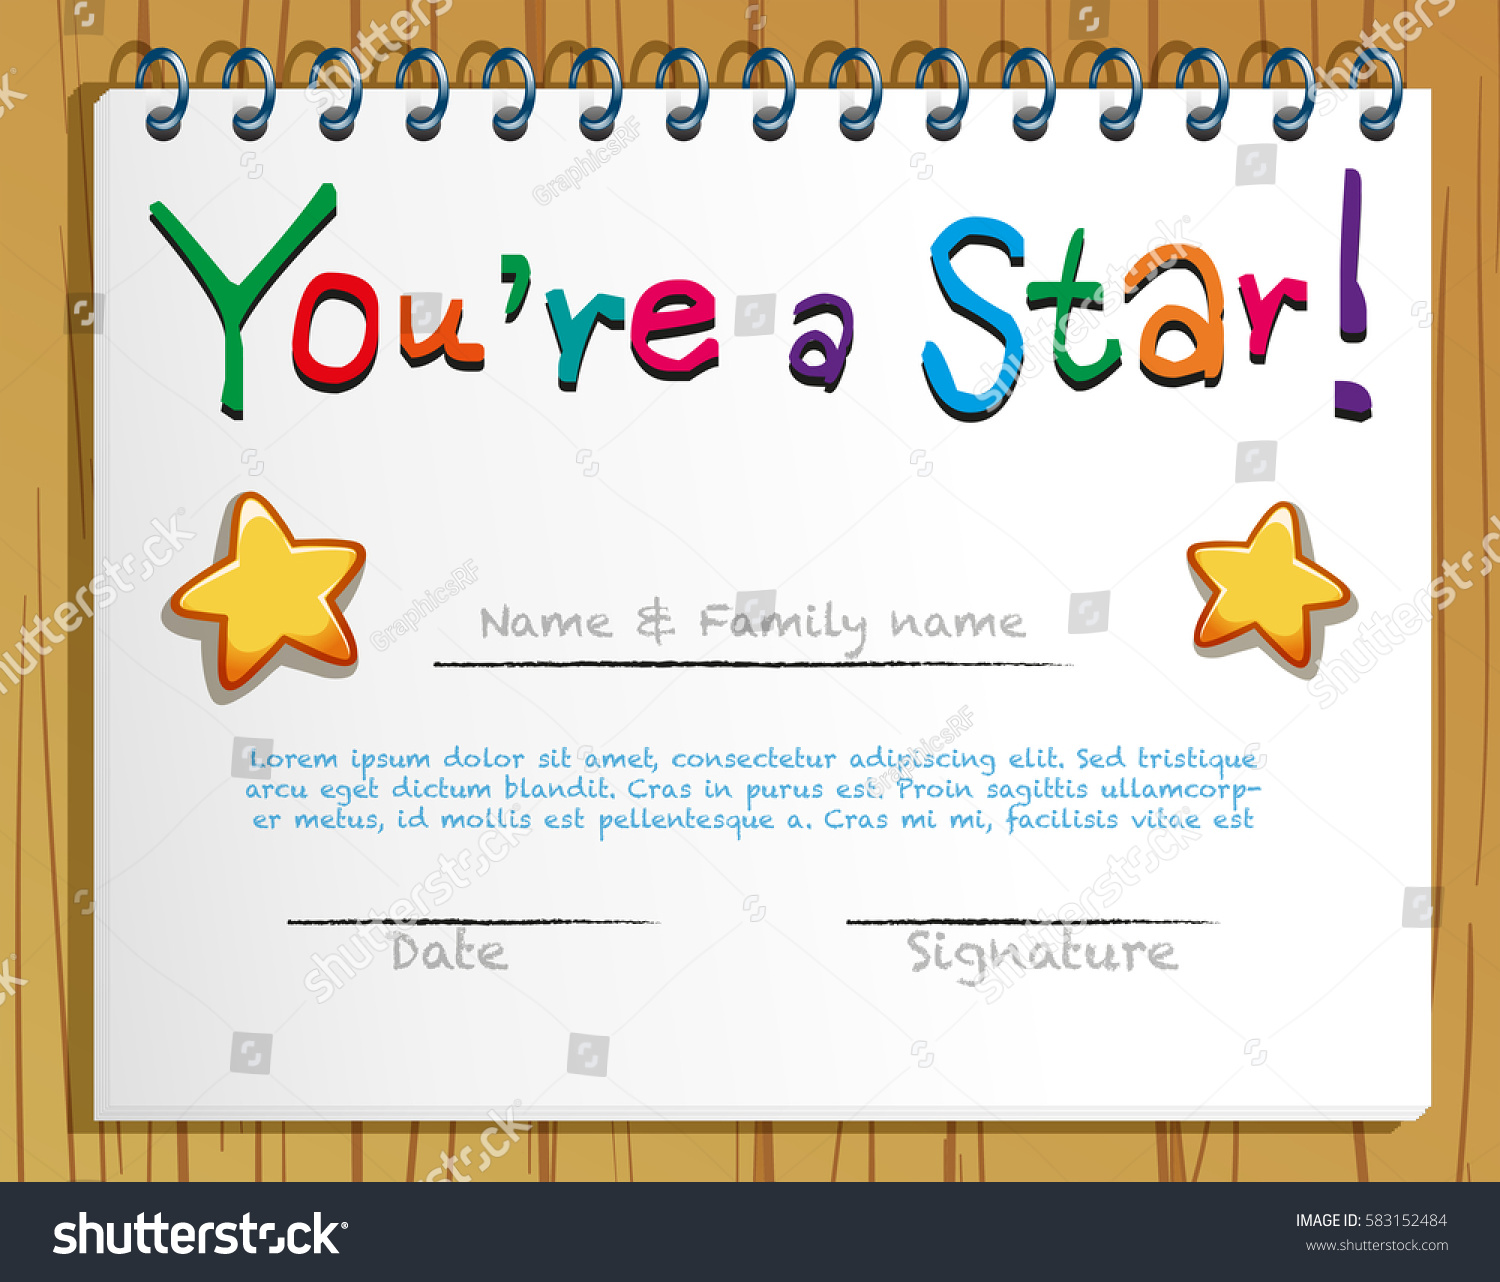 Gold star certificate template images templates example certificate gold star certificate template images templates example yadclub Image collections